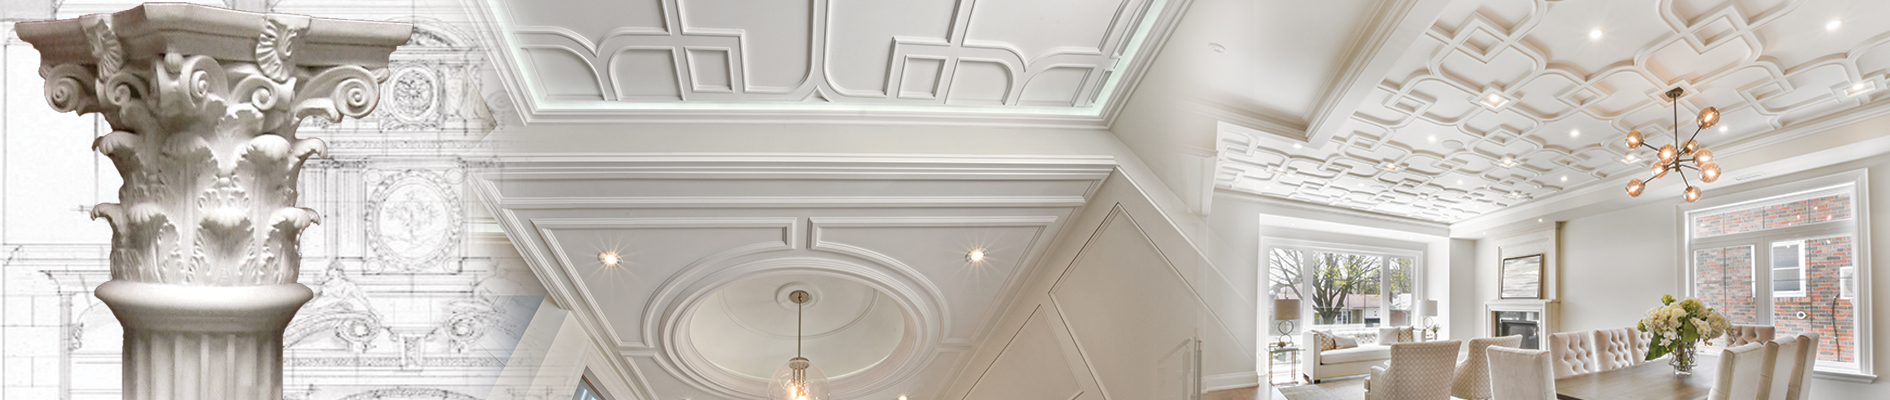 Architectural Plaster Mouldings America : Home am group studio